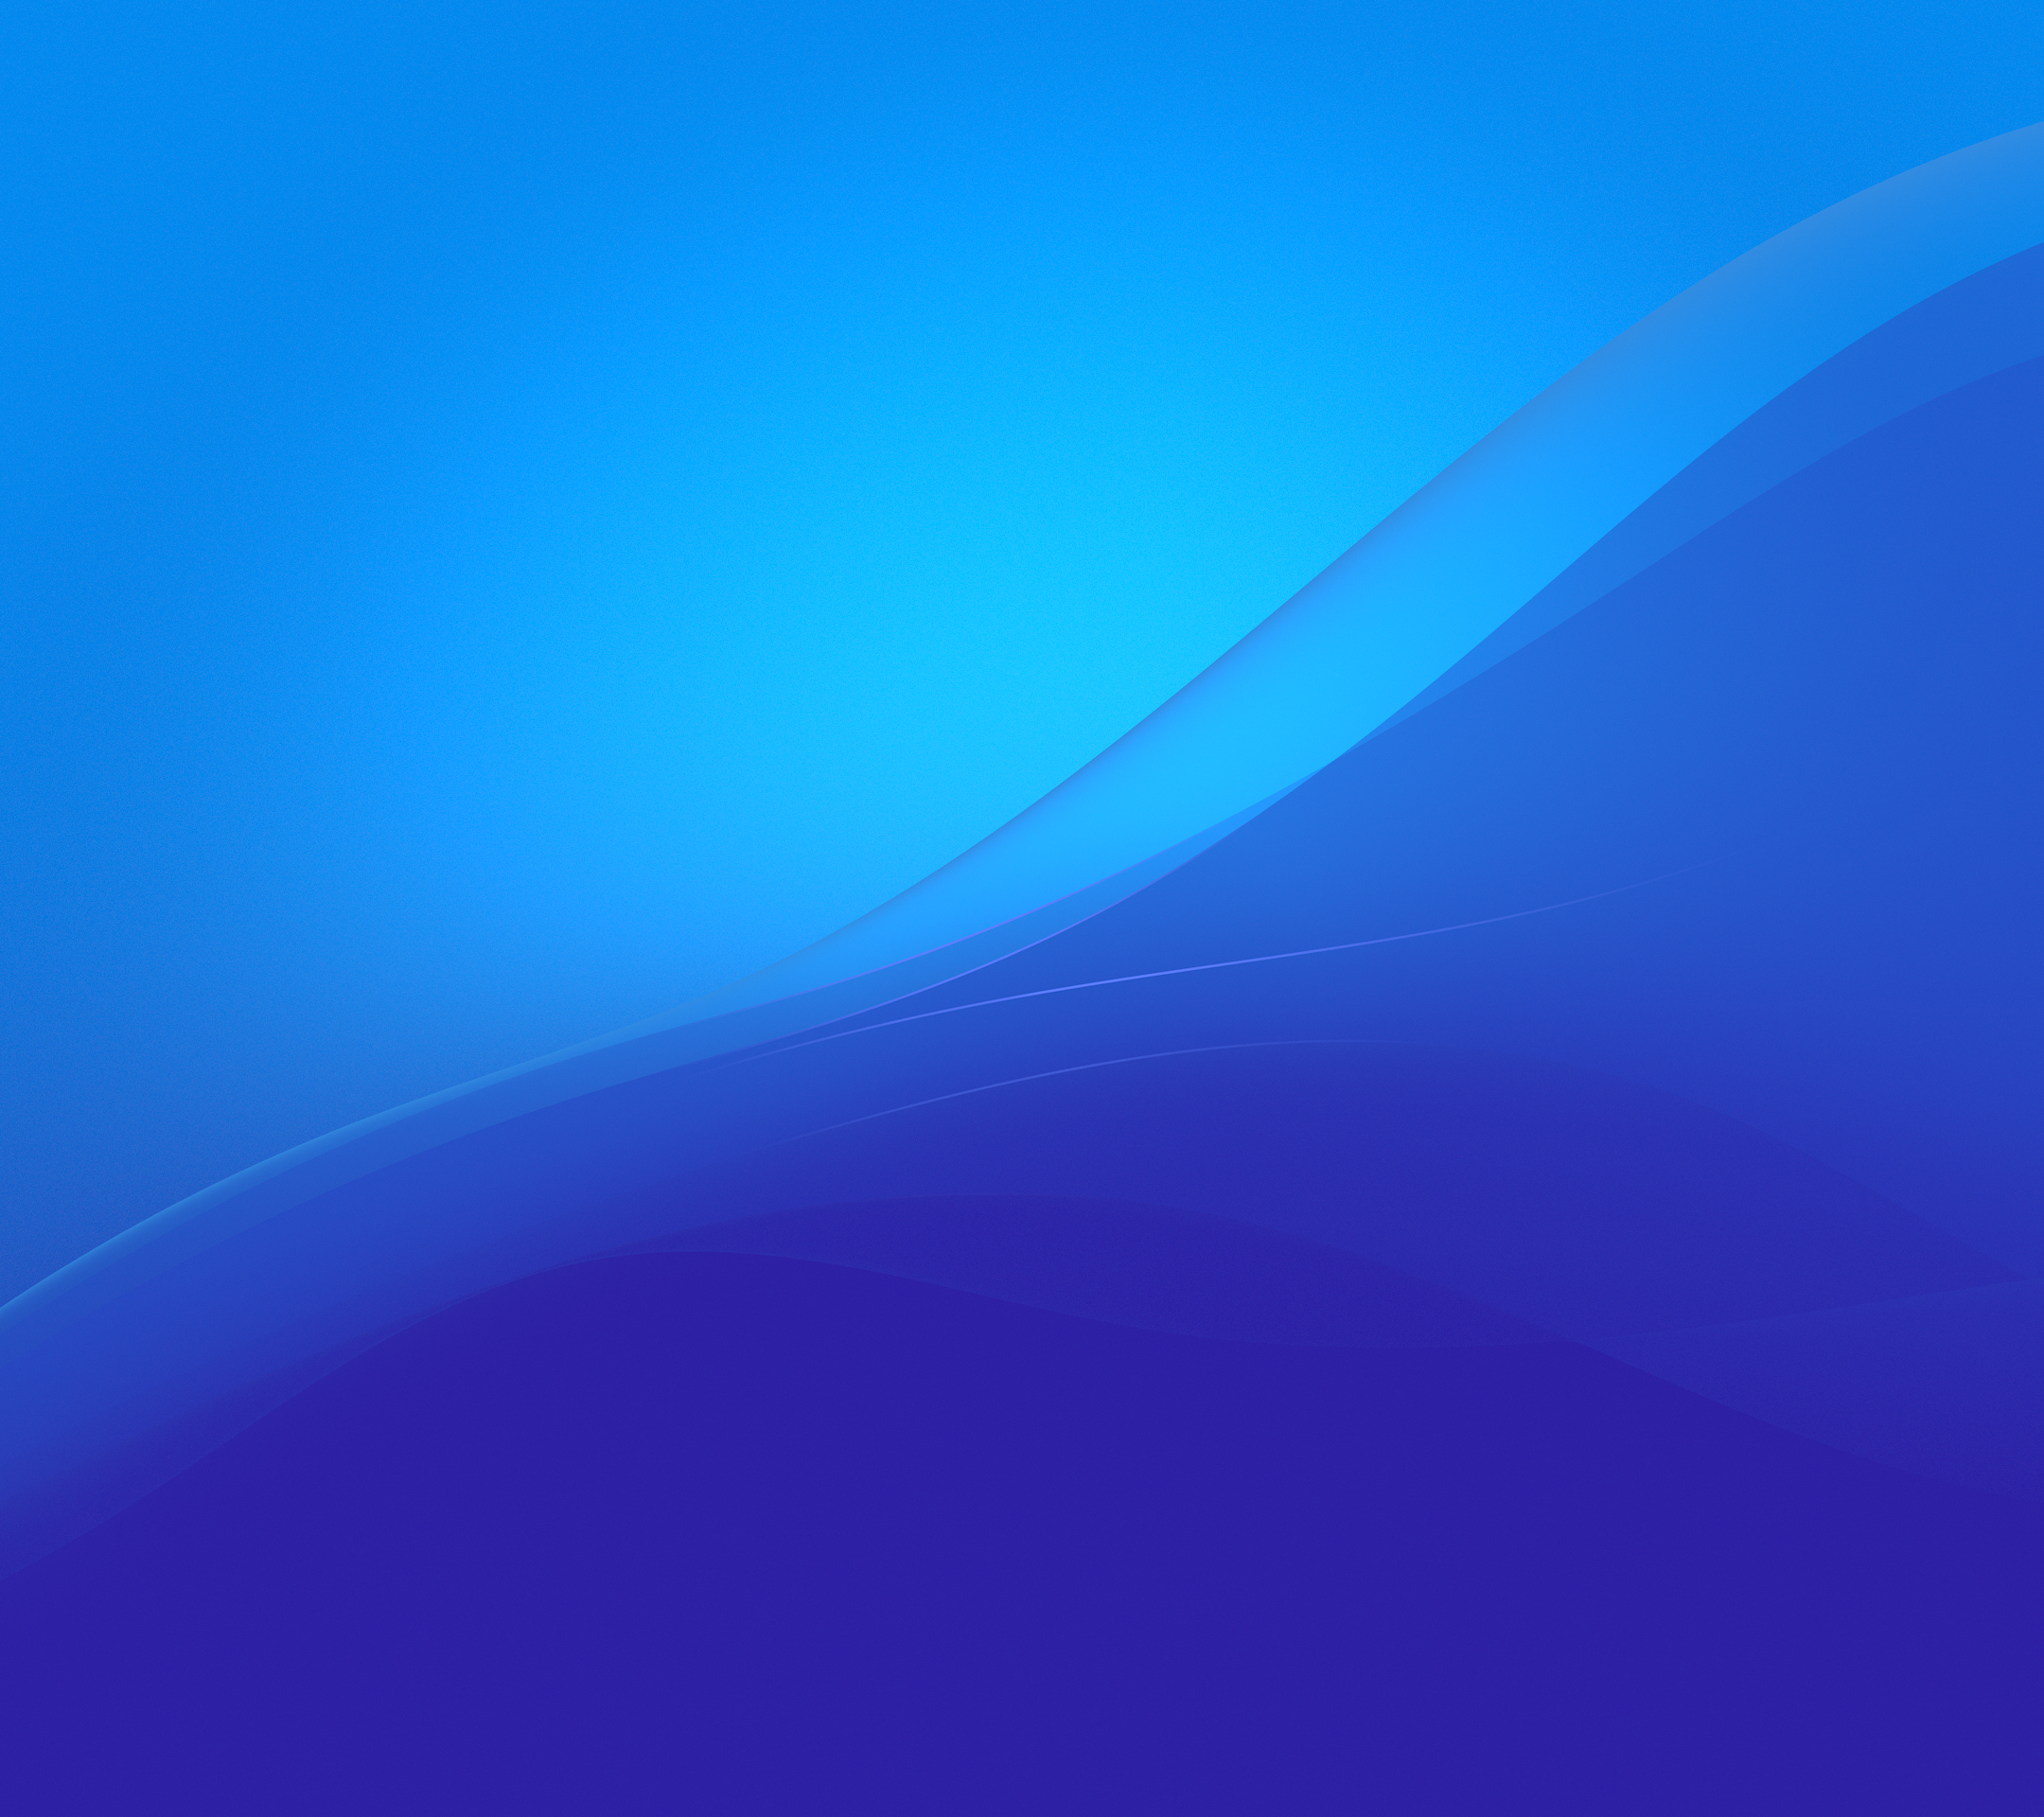 Xperia Z3 Plus Blue Wallpaper Gizmo Bolt Exposing Technology Social Media Web